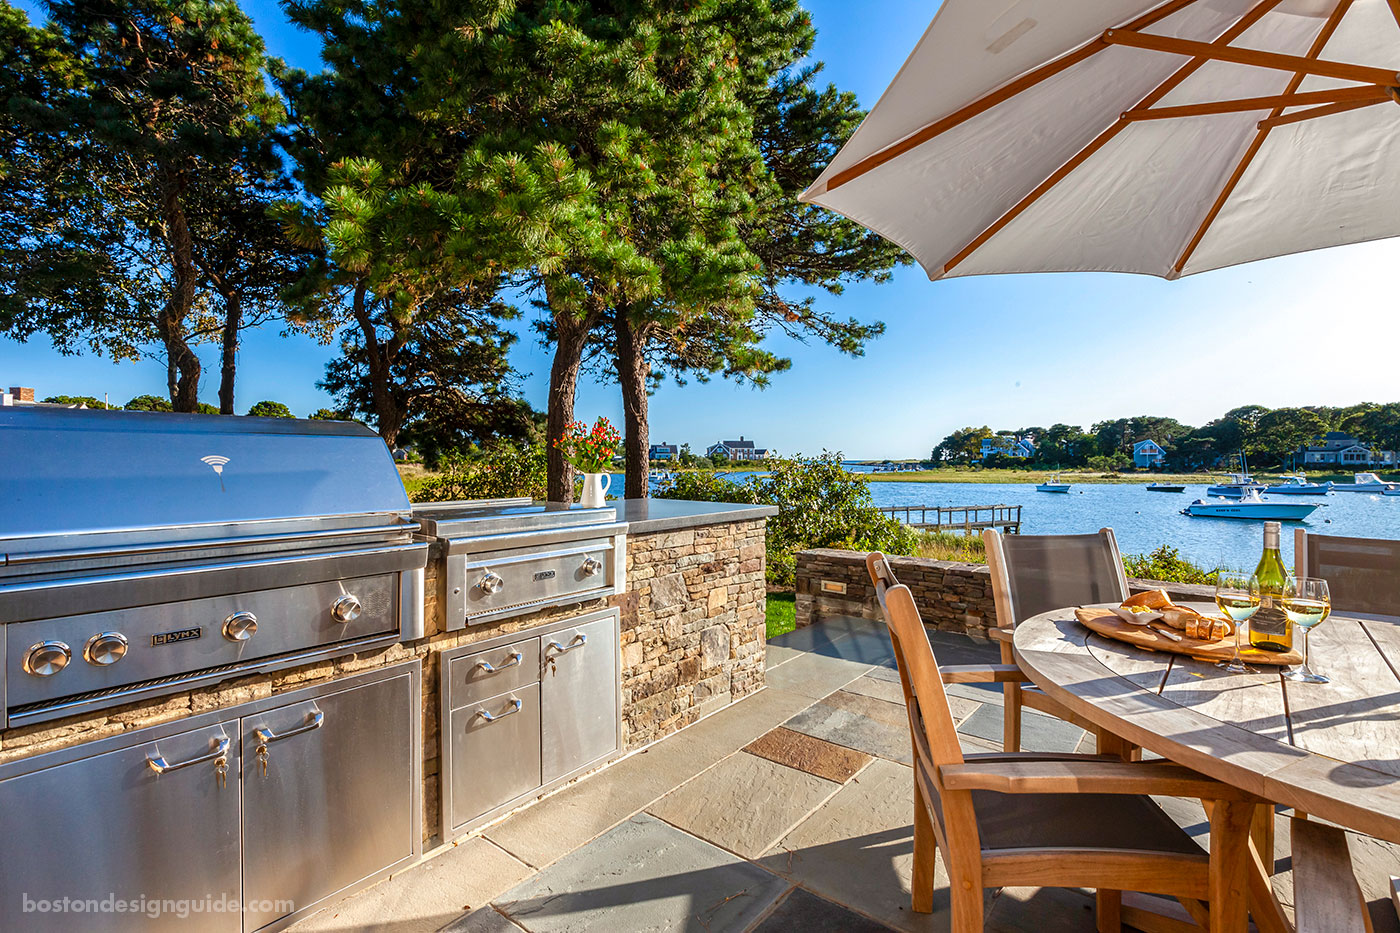 Outdoor kitchen and dining terrace by McPhee Associates of Cape Cod